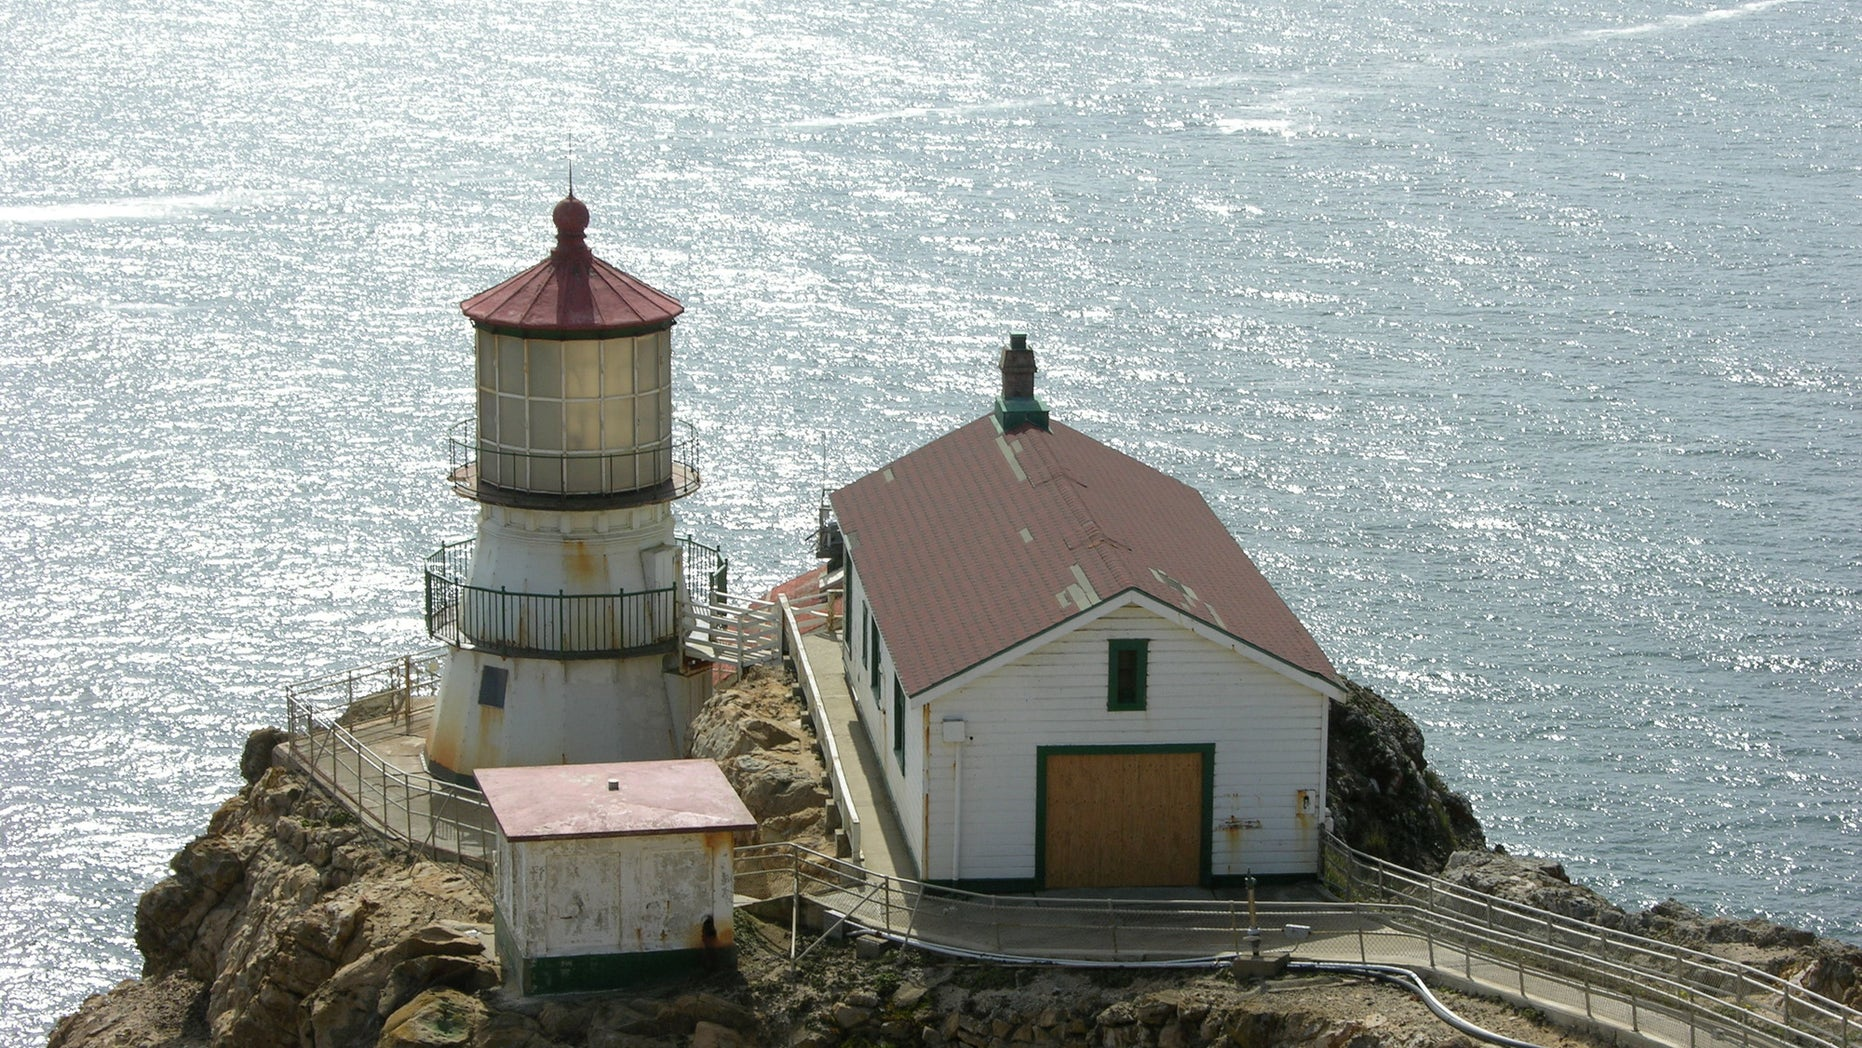 Construction workers found a time capsule hidden behind a wooden plank inside a wall of the Point Reyes National Lighthouse in California in October 2018.